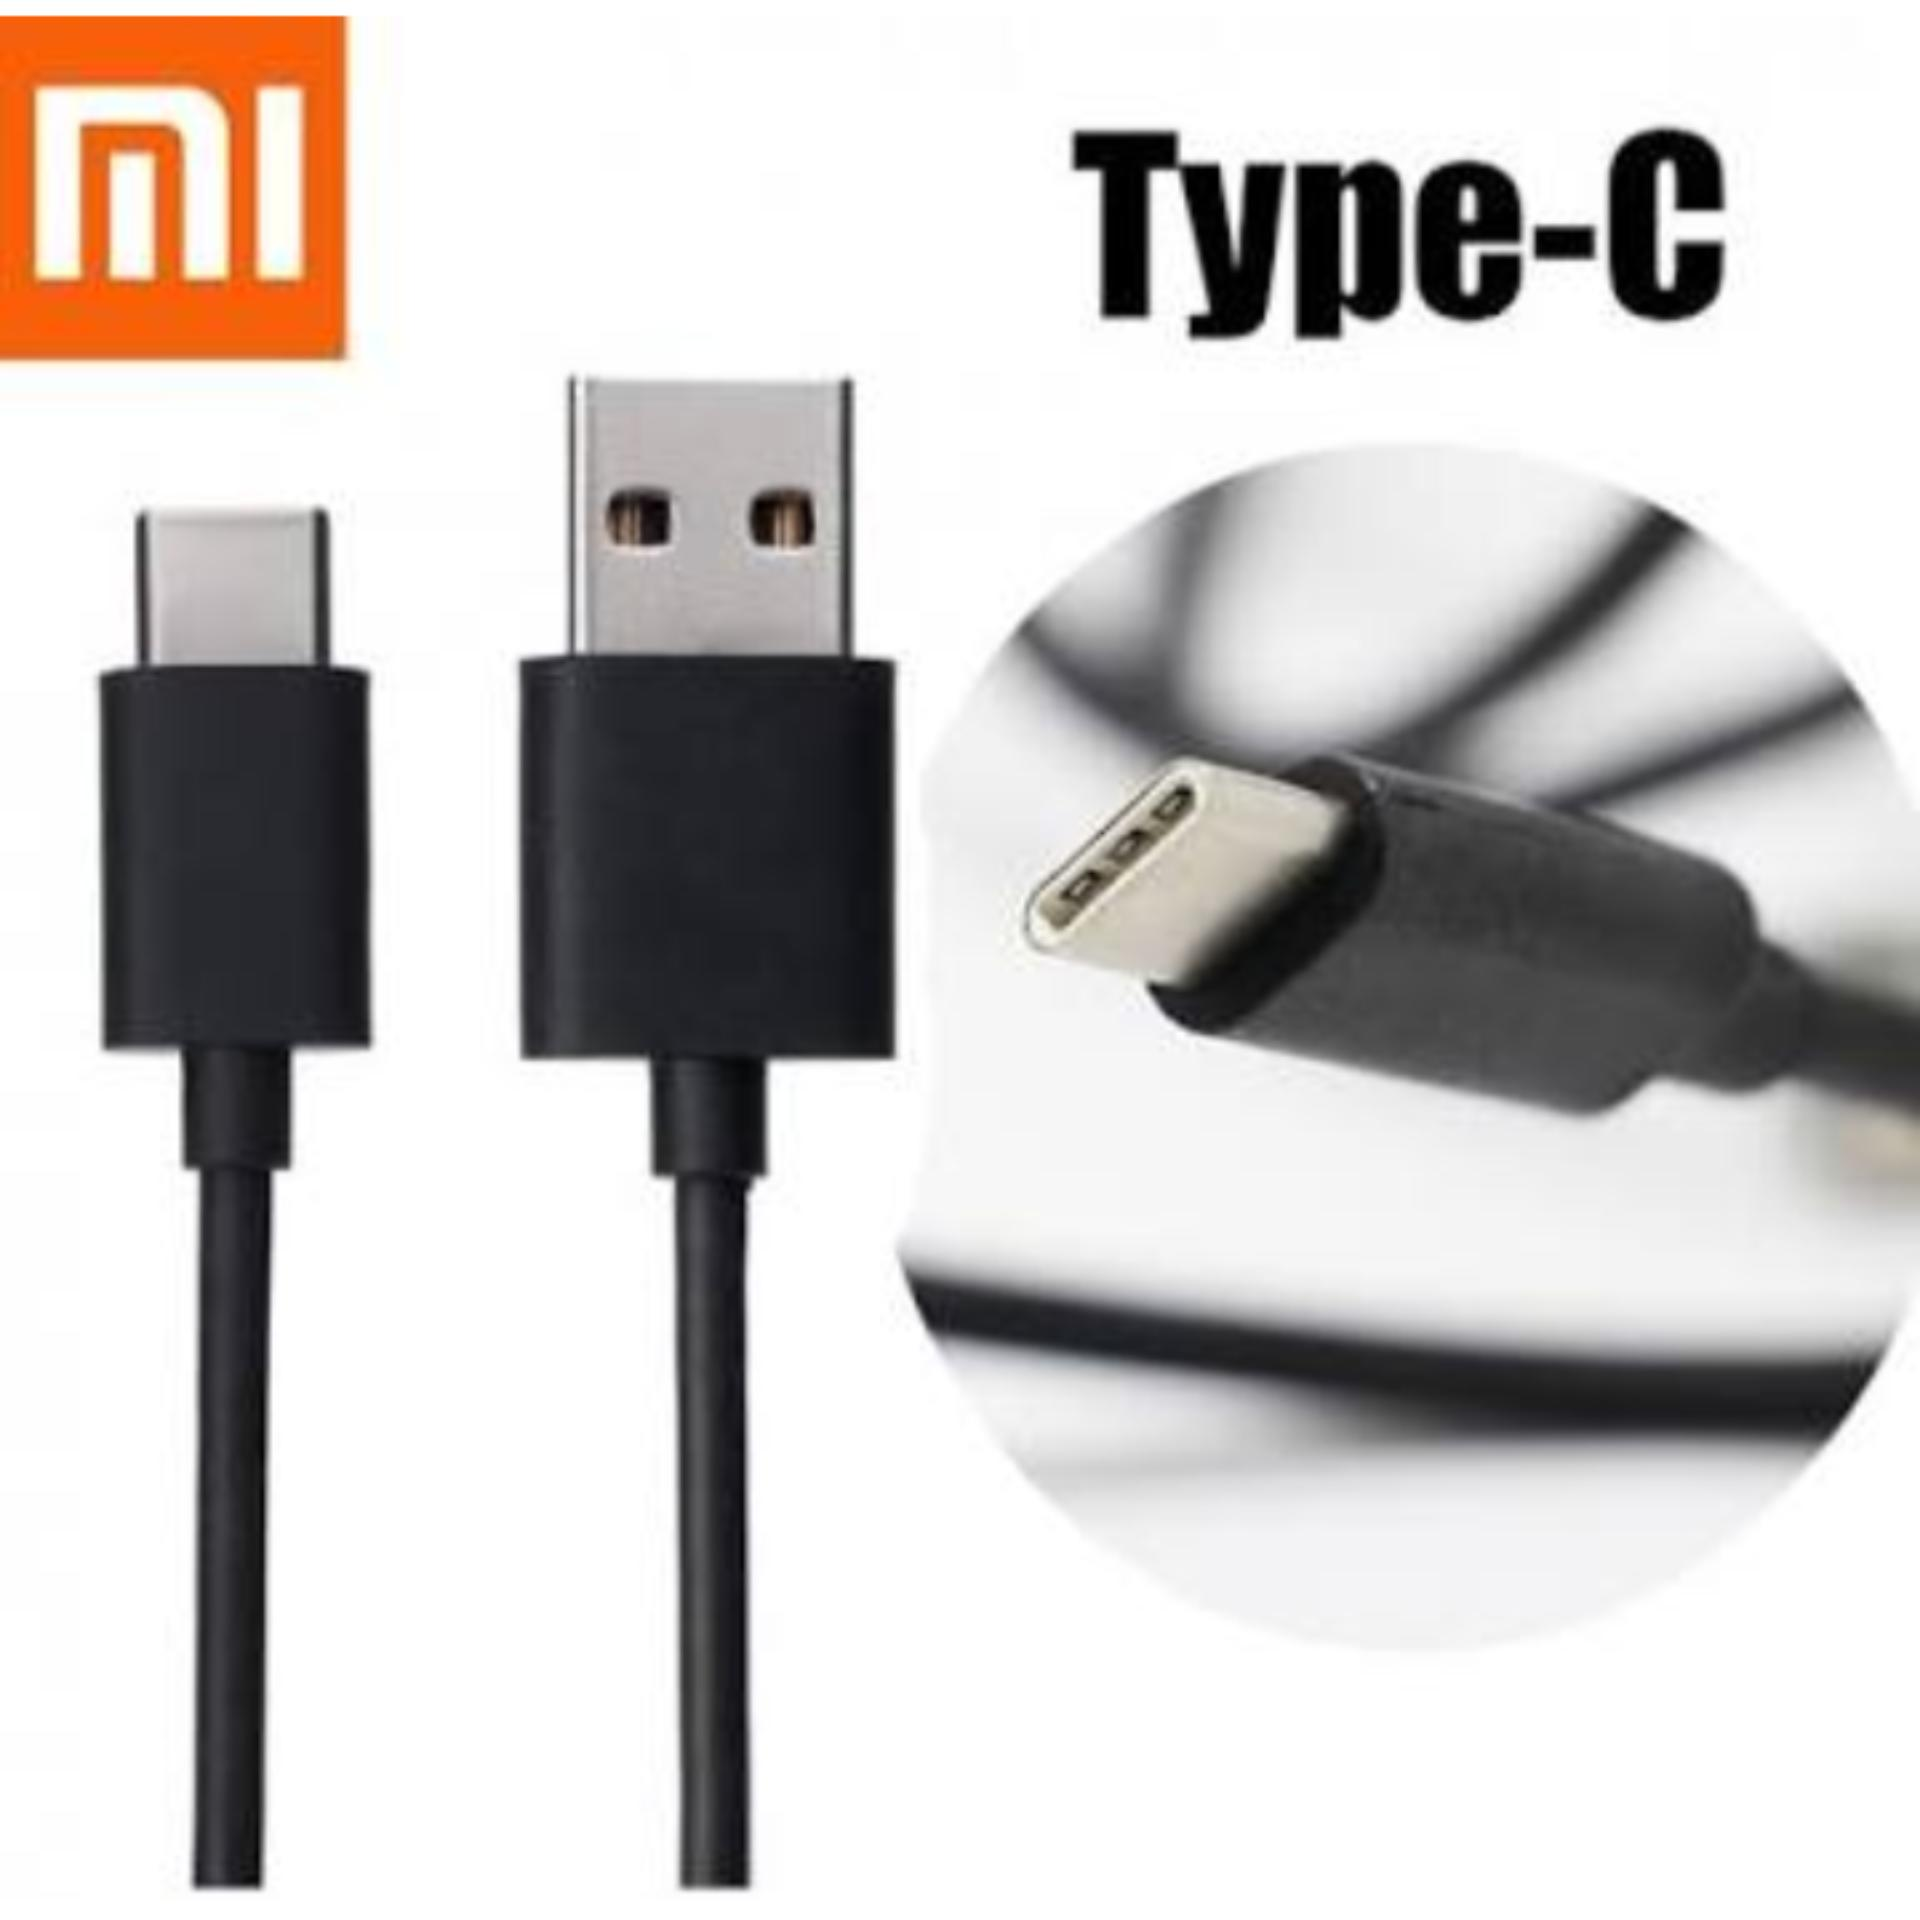 Beli Charger Kabel Data Xiaomi Original Store Marwanto606 Xiomi Type C Cable Mi 4c 5 2a Fast